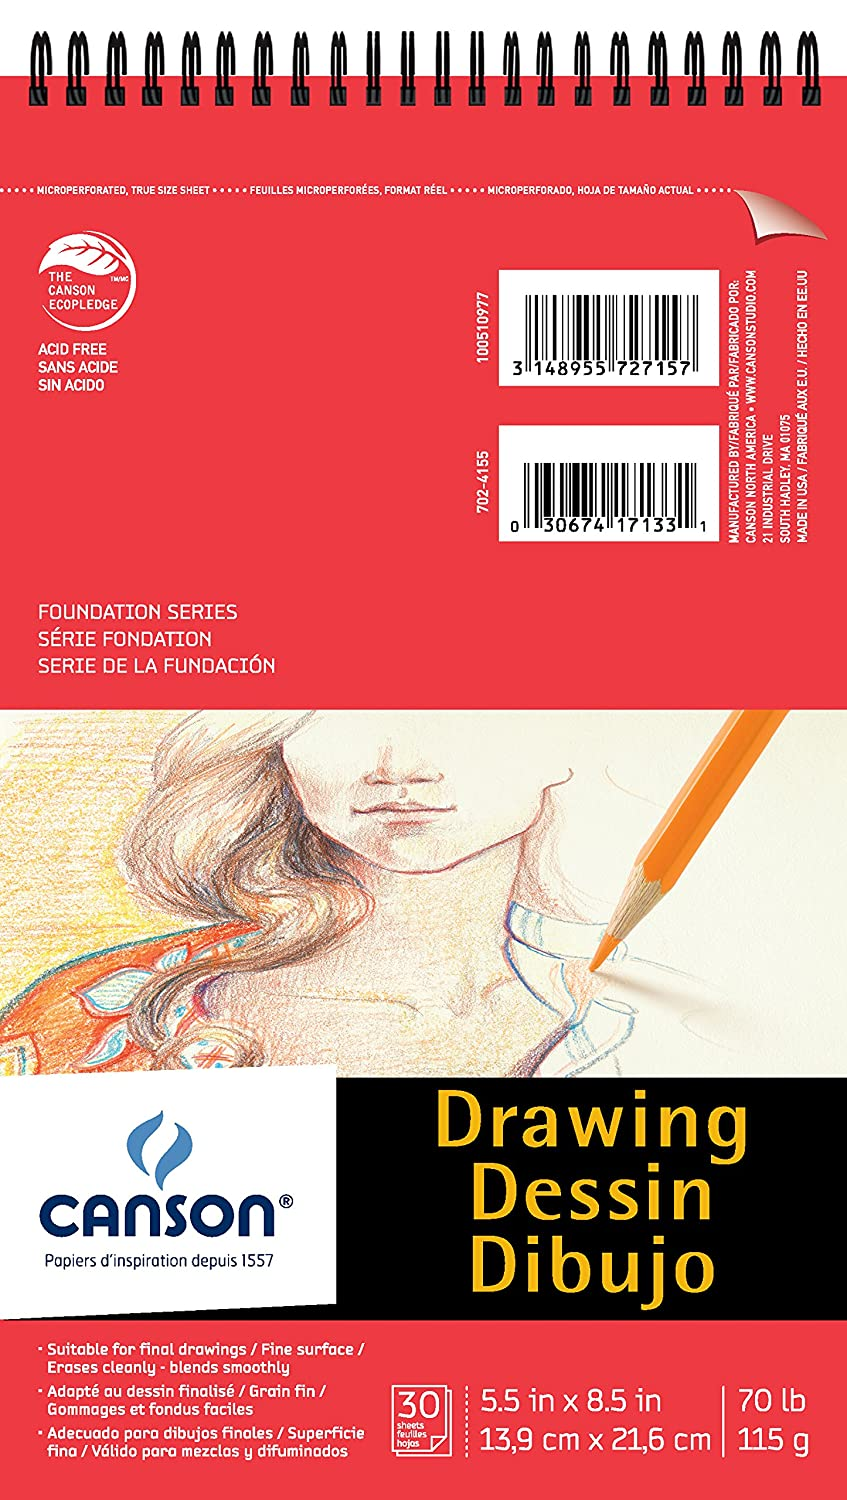 Canson Foundation Drawing Paper Pad with Micro-Perforated Sheets and Fine Texture, Side Wire Bound, 70 Pound, 18 x 24 Inch, 30 Sheets Canson Inc. 100510981